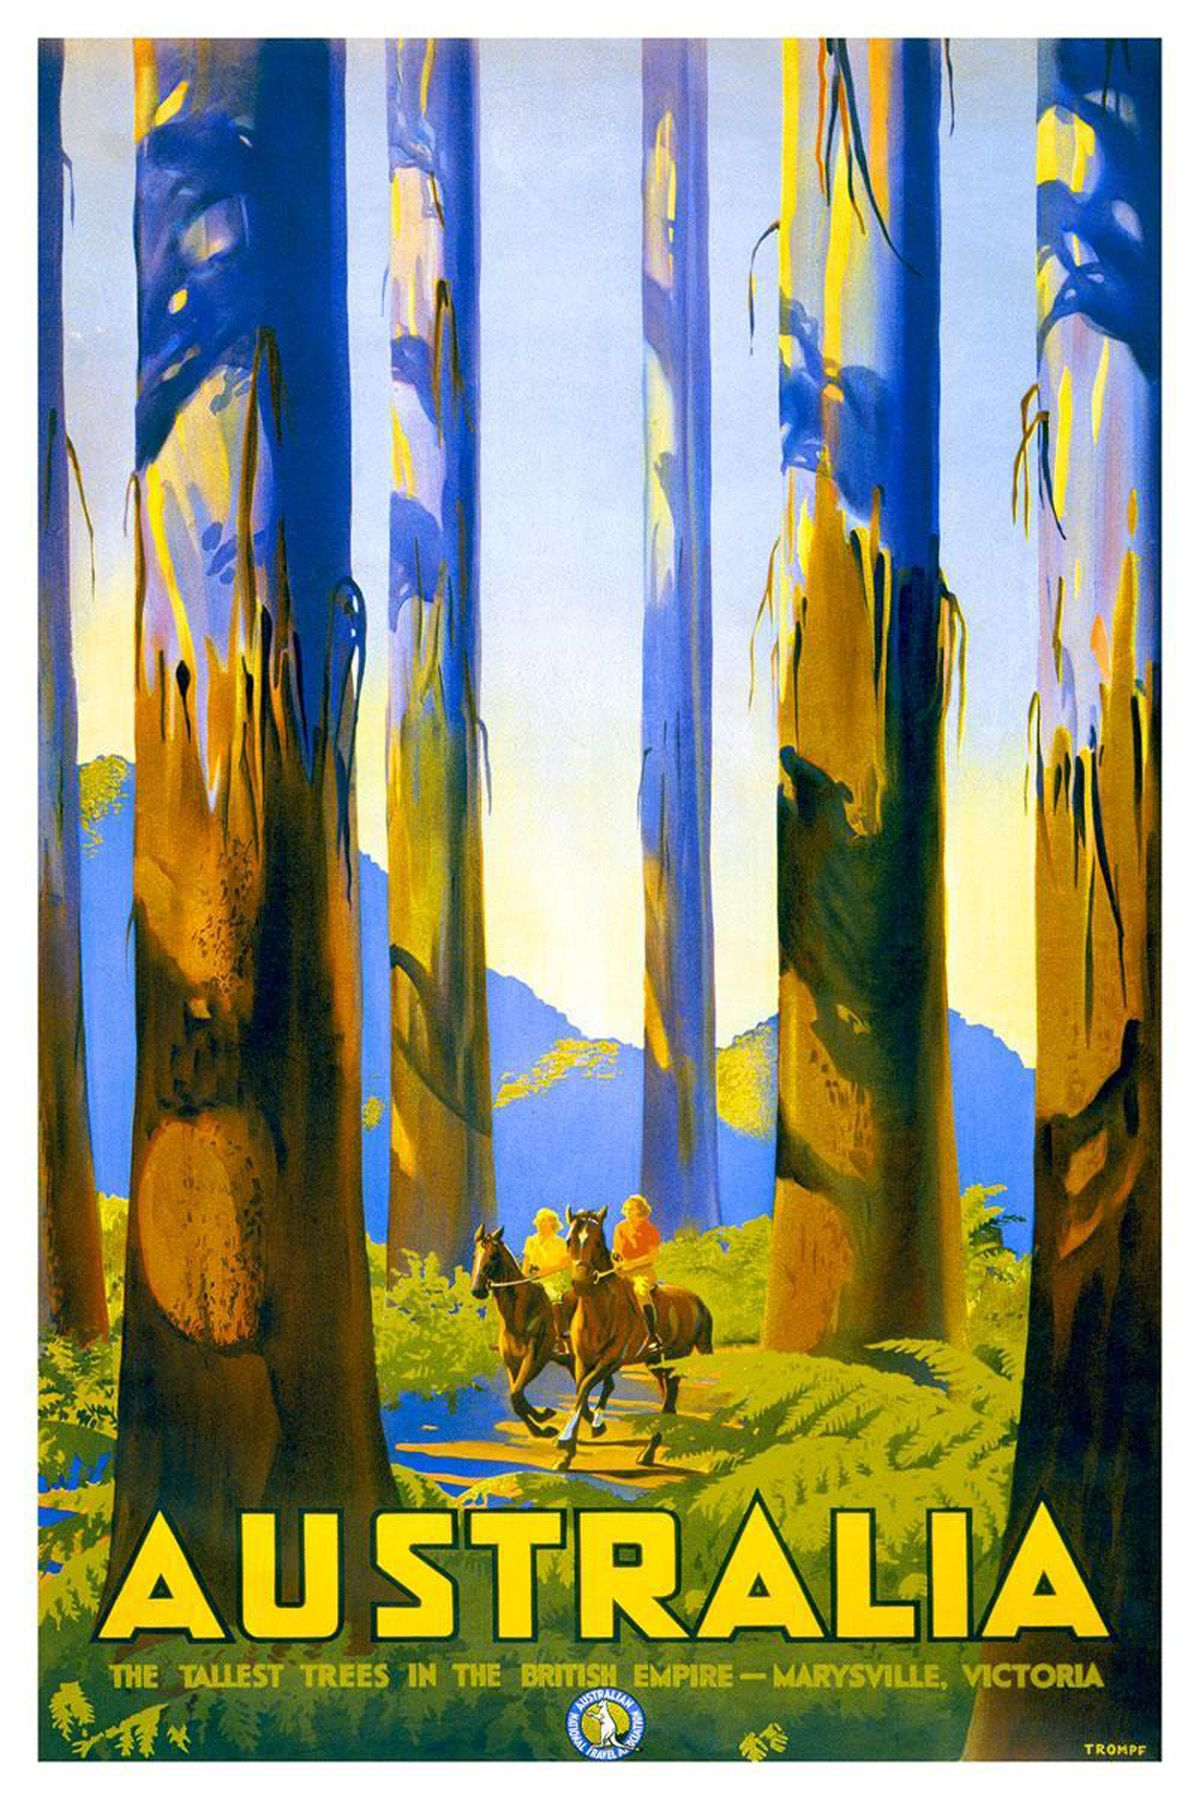 Australian Travel Poster The Tallest Trees In The British Empire 1930 Vintage Travel Posters Retro Travel Poster Posters Australia